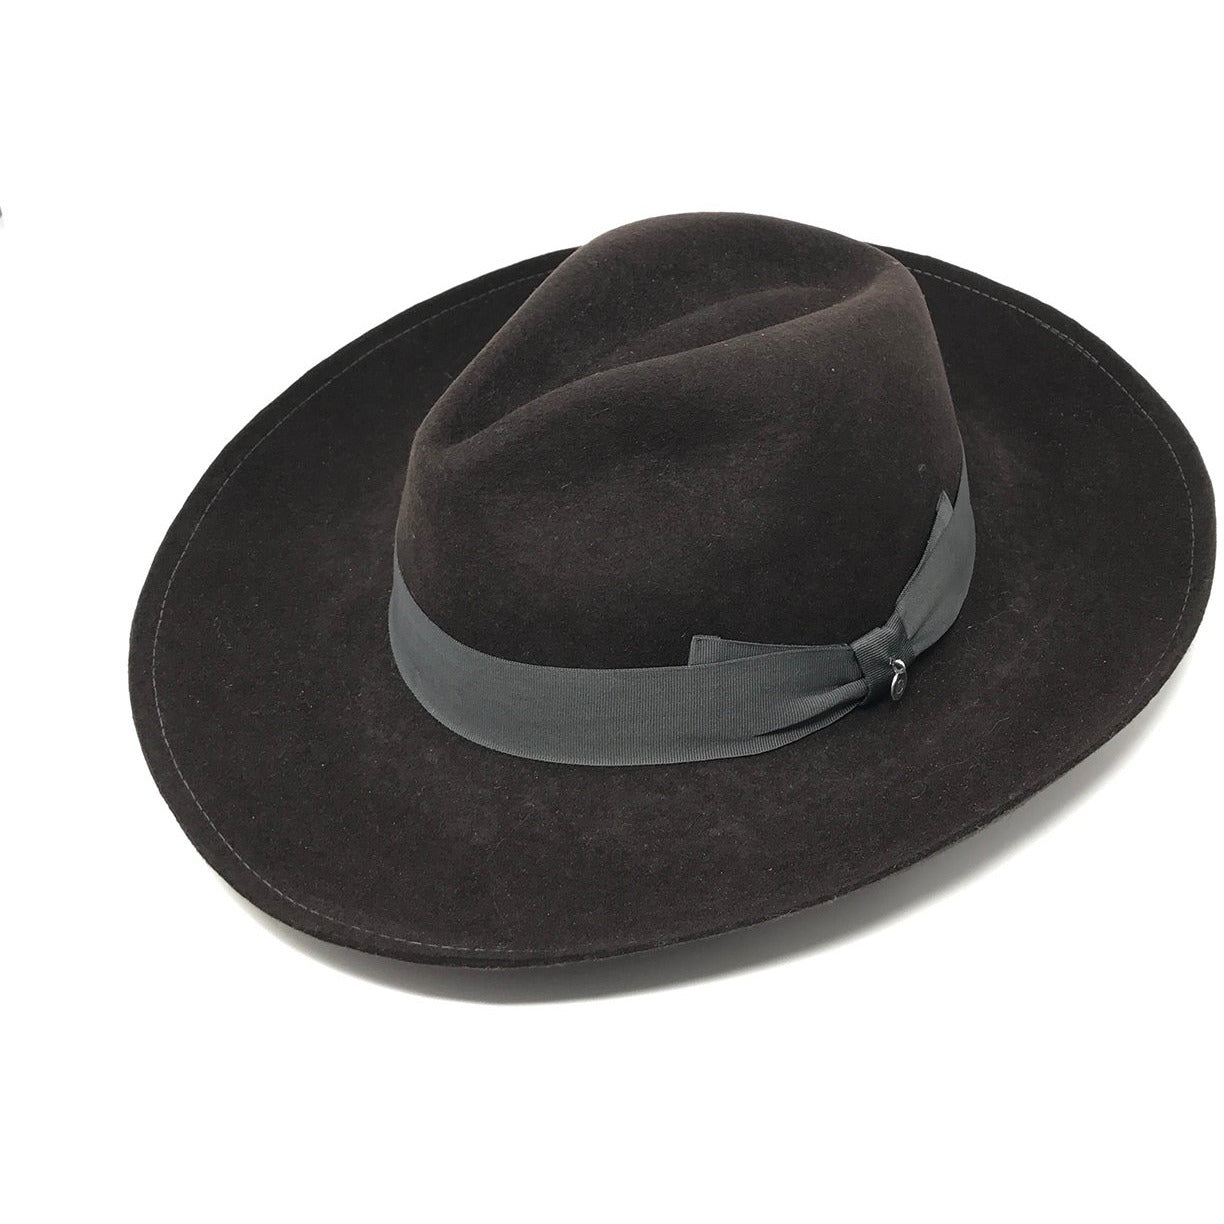 76474663d1a Ene Wide-Brim Fedora Hat - Individualistic Fedoras For The Winter ...